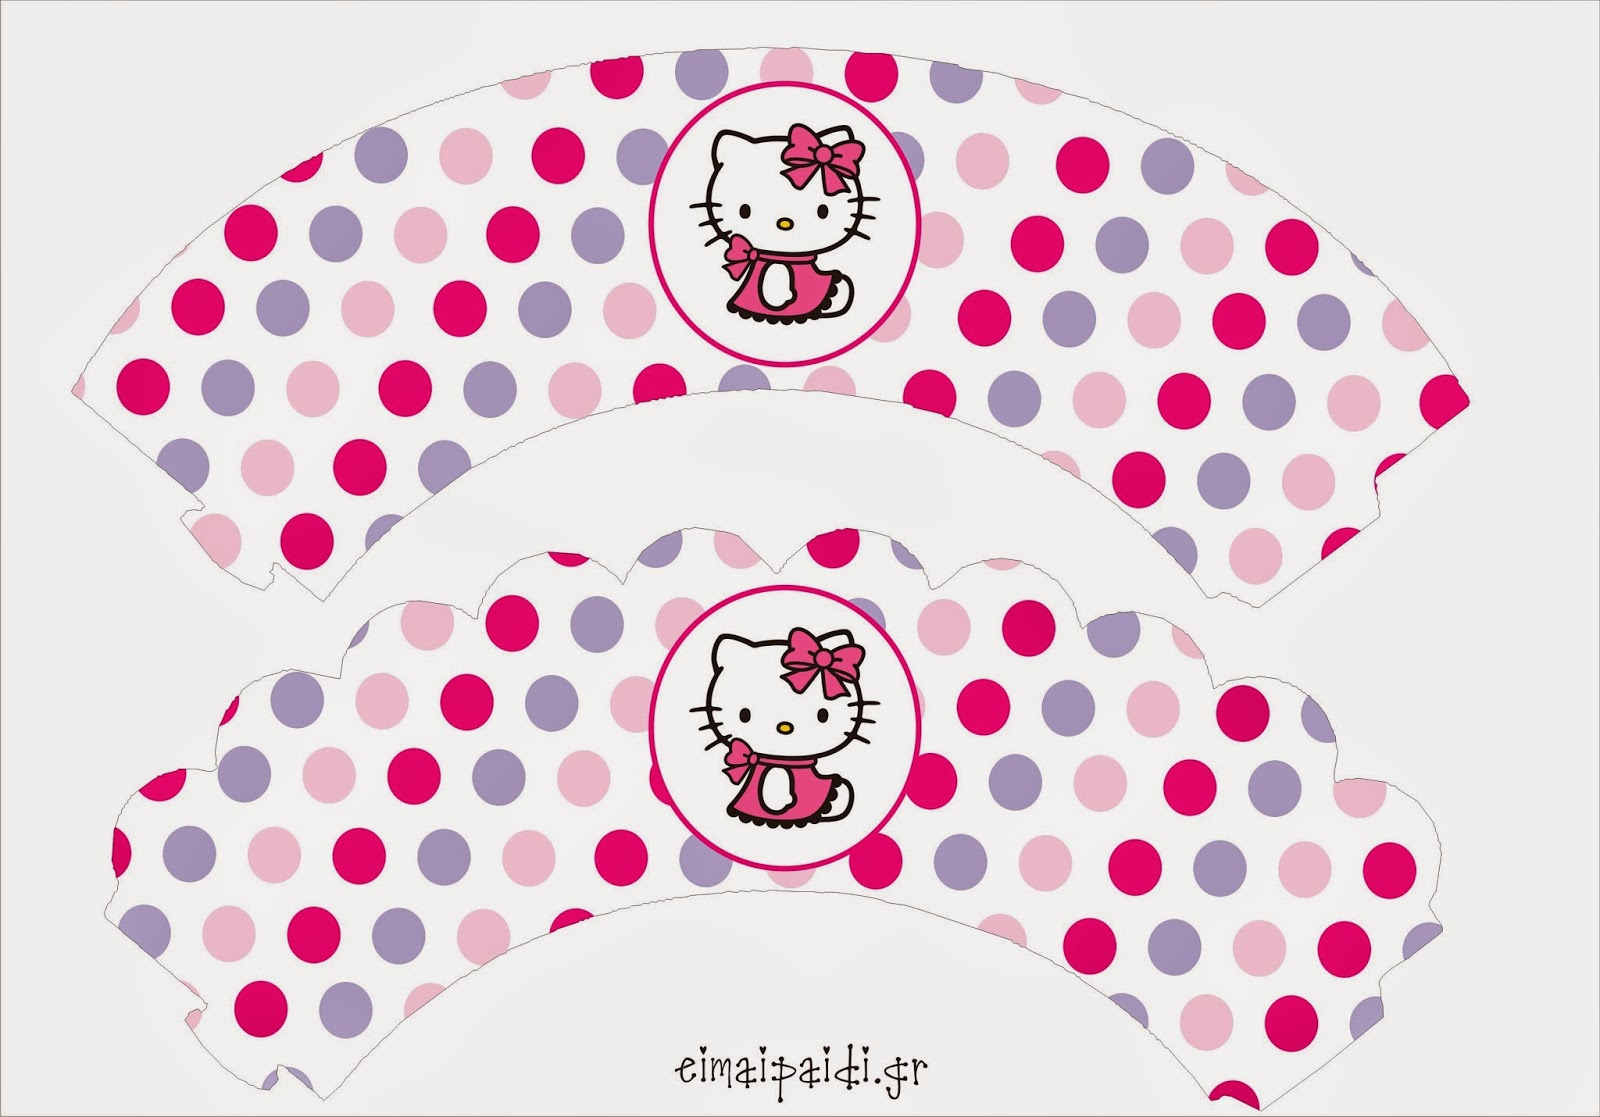 eimaipaidi.gr-cupcakes cover-Hello Kitty-printables